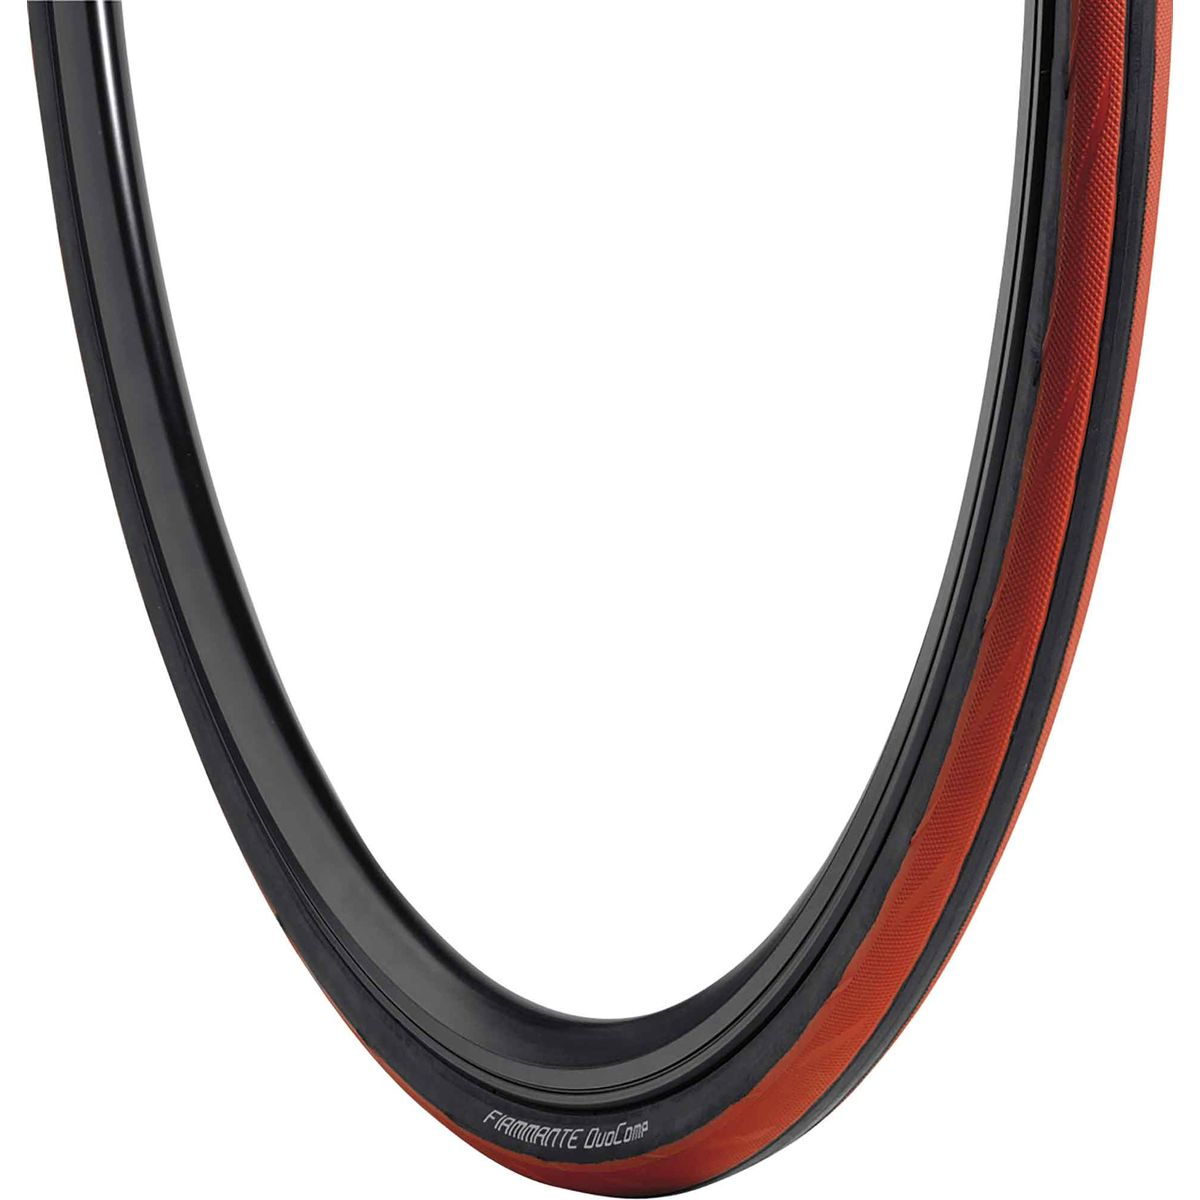 Fiammante DuoComp road bike tyre, folding tyre